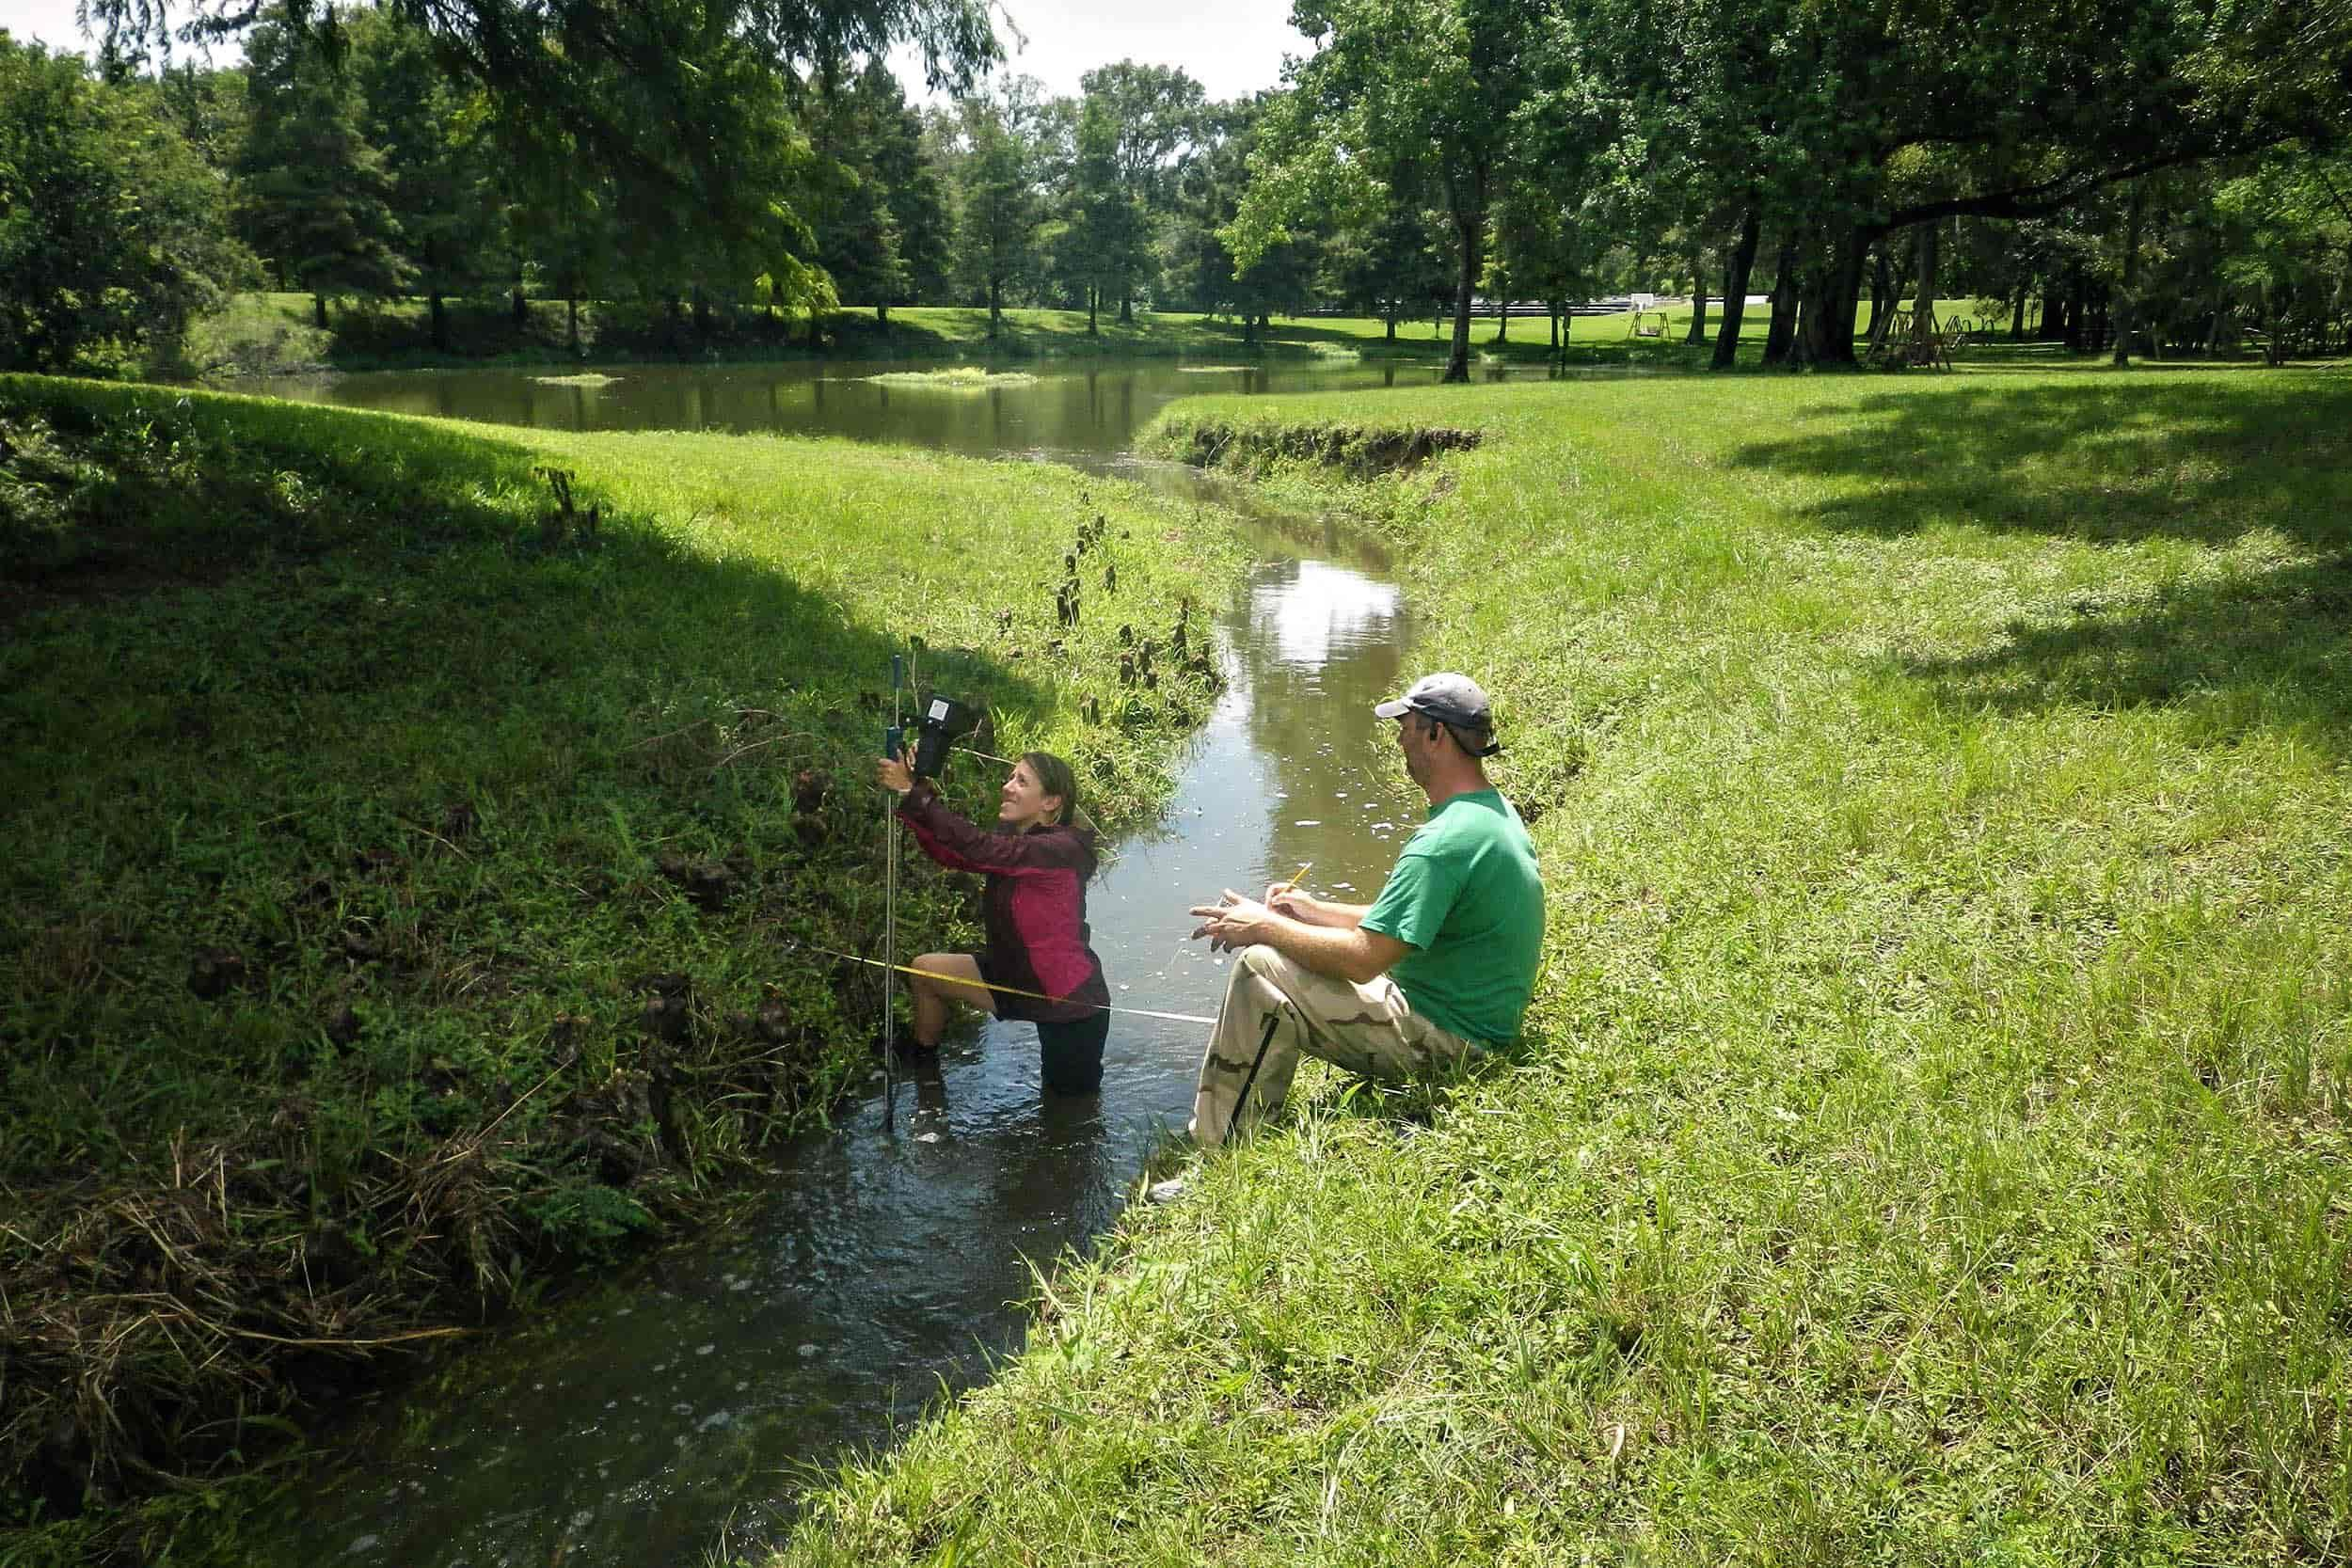 Laila Melendez, research assistant, and Colby Lawrence, research associate, take a flow measurement during a wet weather event.